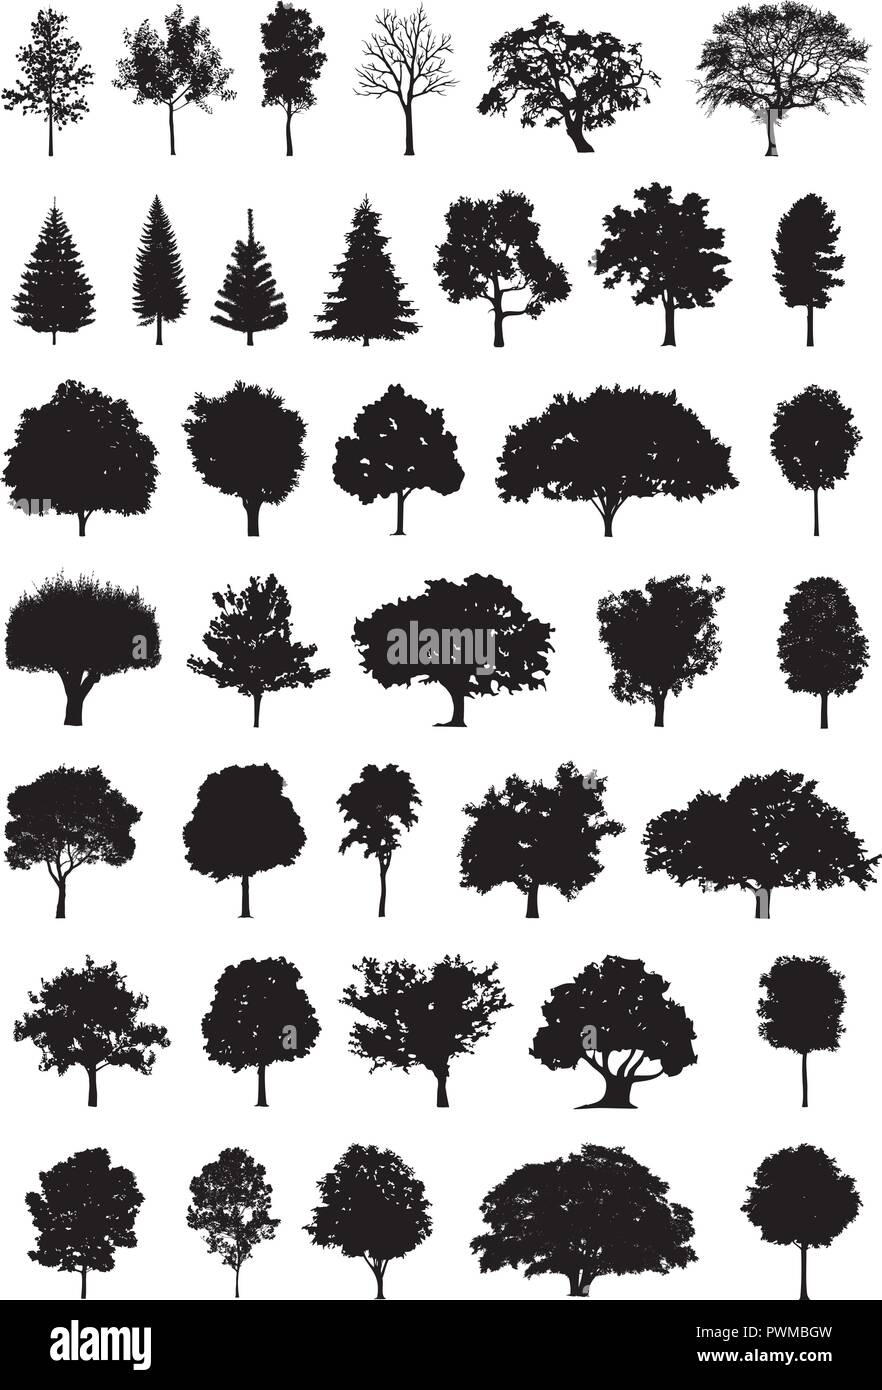 tree silhouette vector illustration - Stock Vector